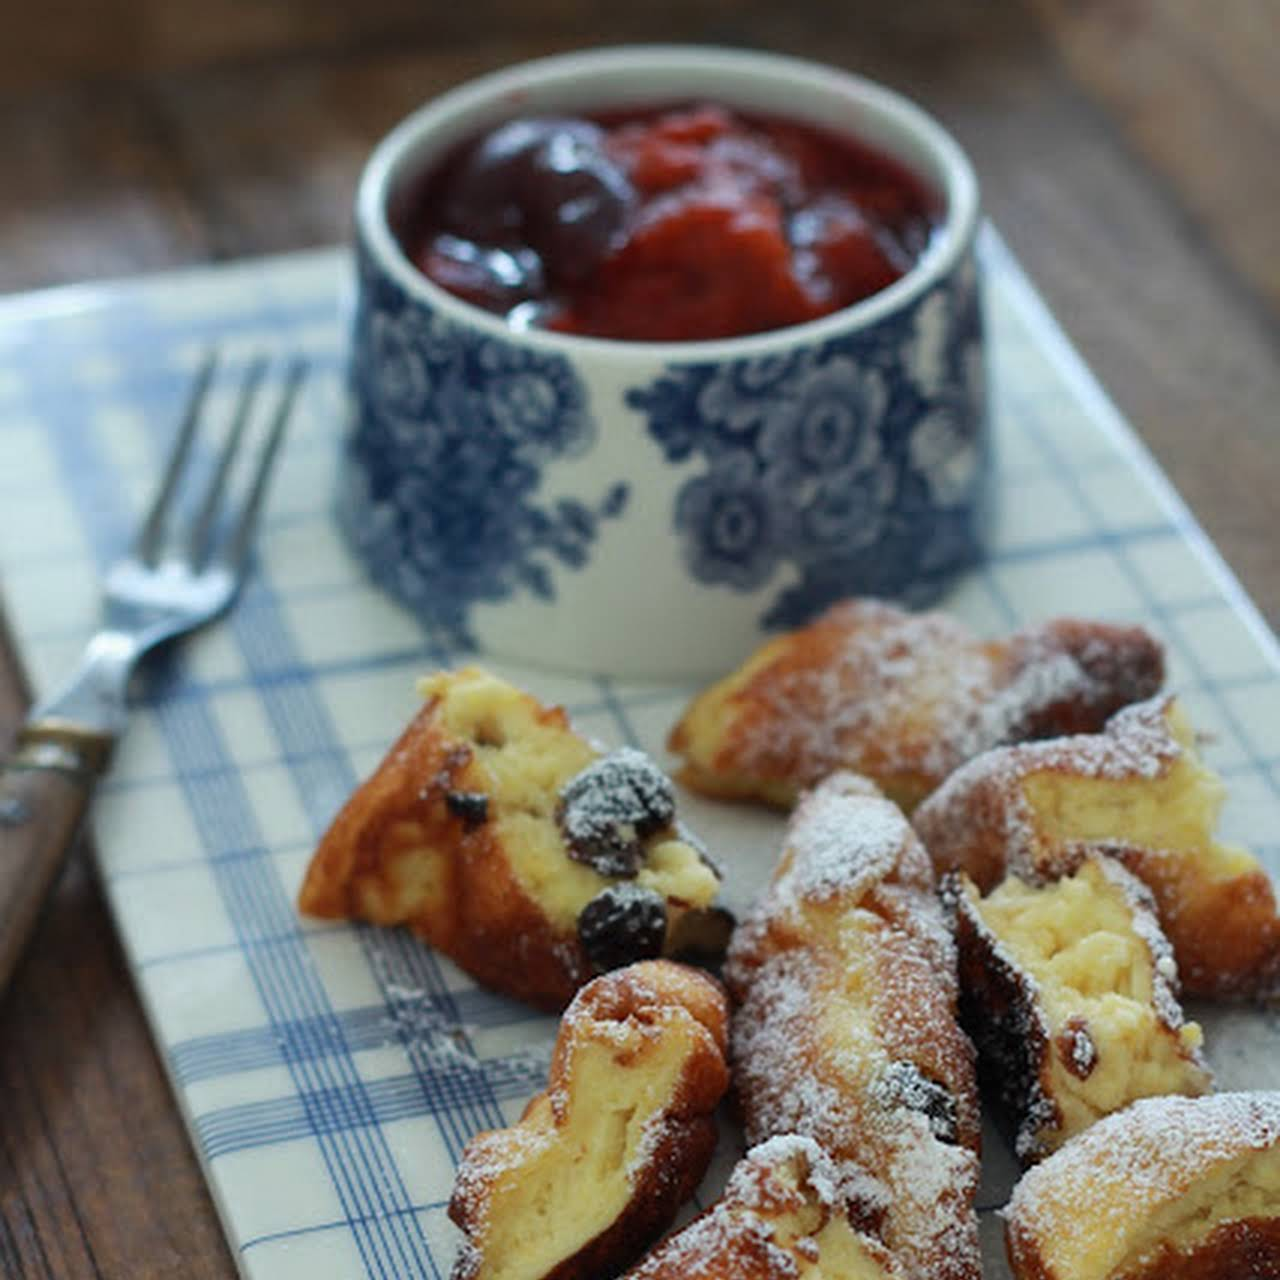 Kaiserschmarren or Imperial crepes